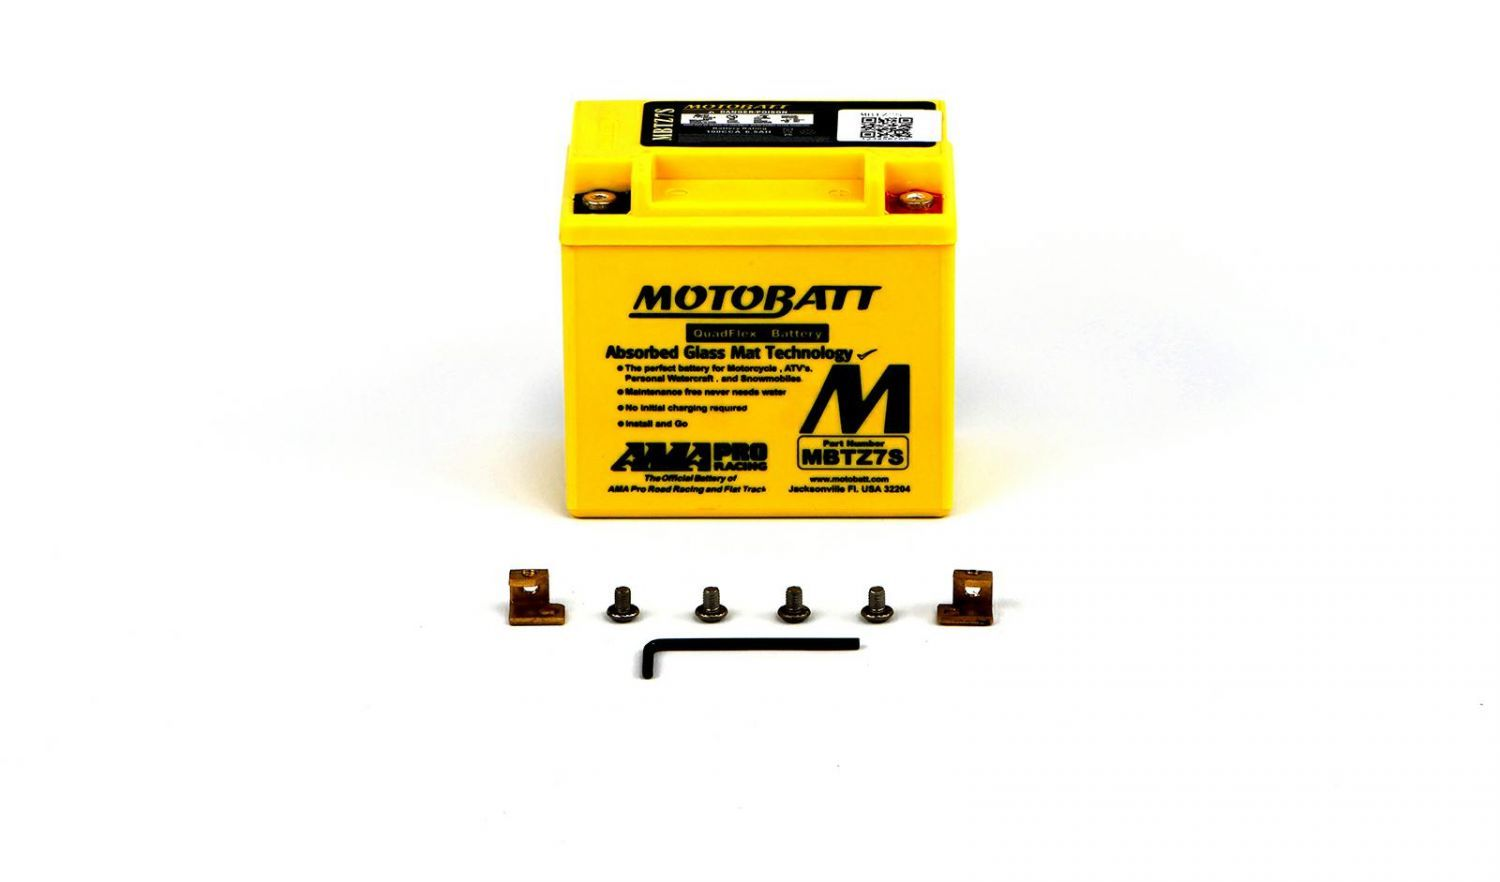 Motobatt Batteries - 501079MY image